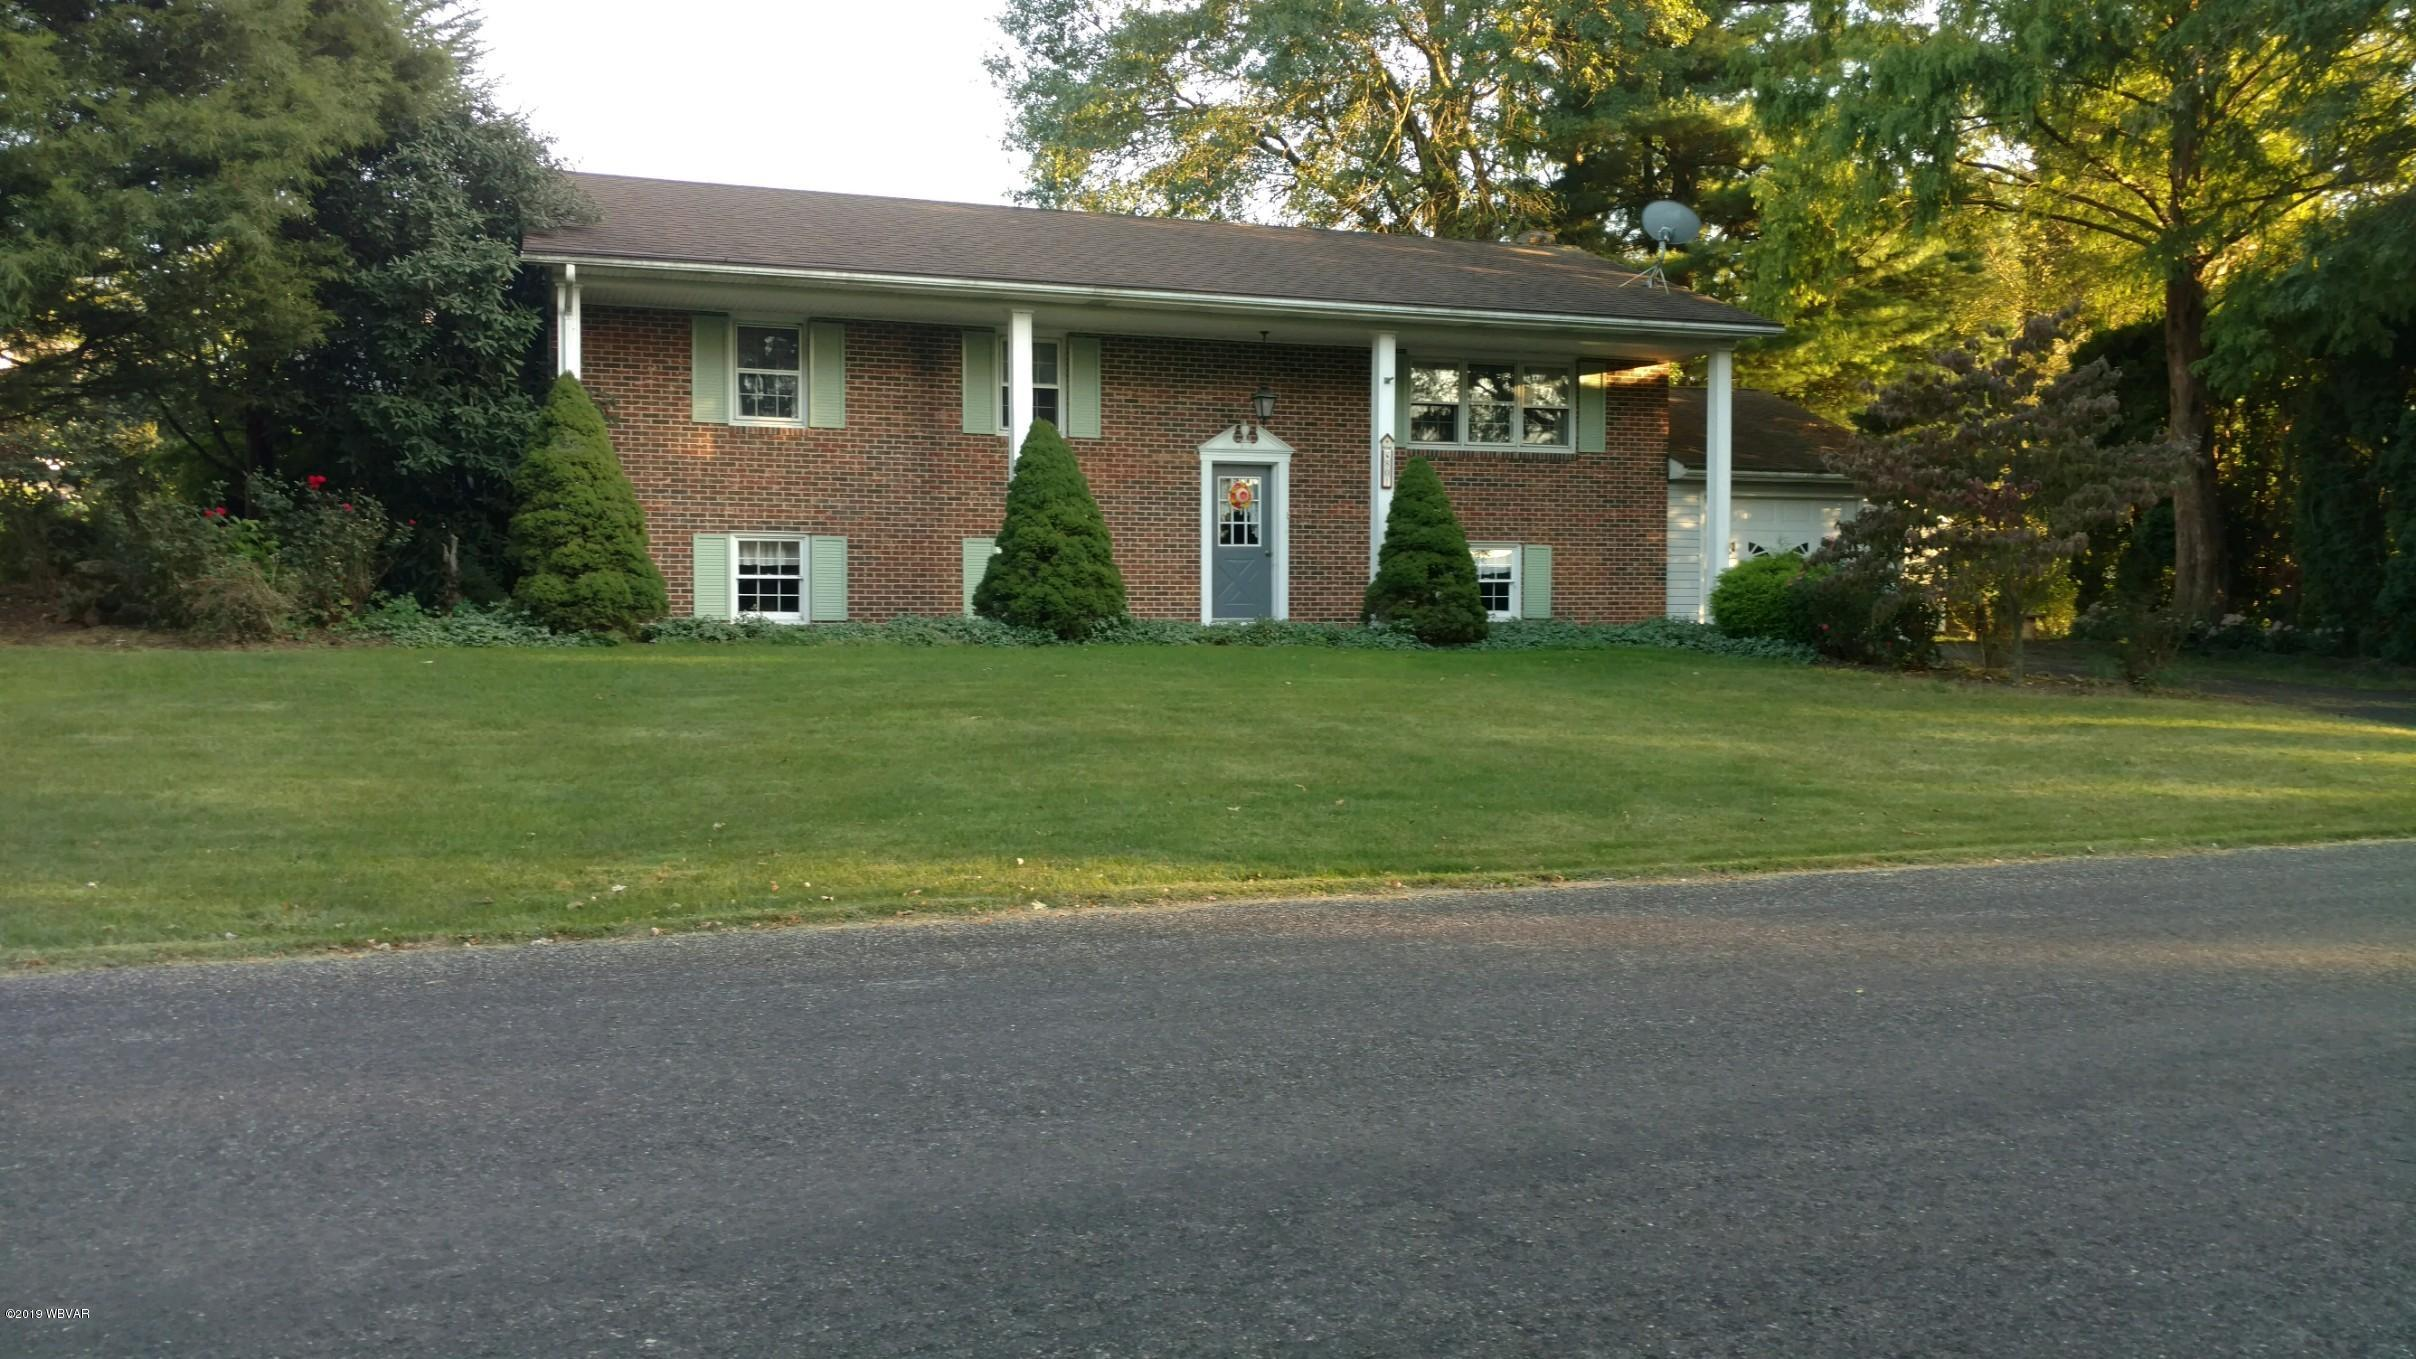 801 CRESTVIEW ROAD,Mifflinburg,PA 17844,3 Bedrooms Bedrooms,2 BathroomsBathrooms,Residential,CRESTVIEW,WB-88498